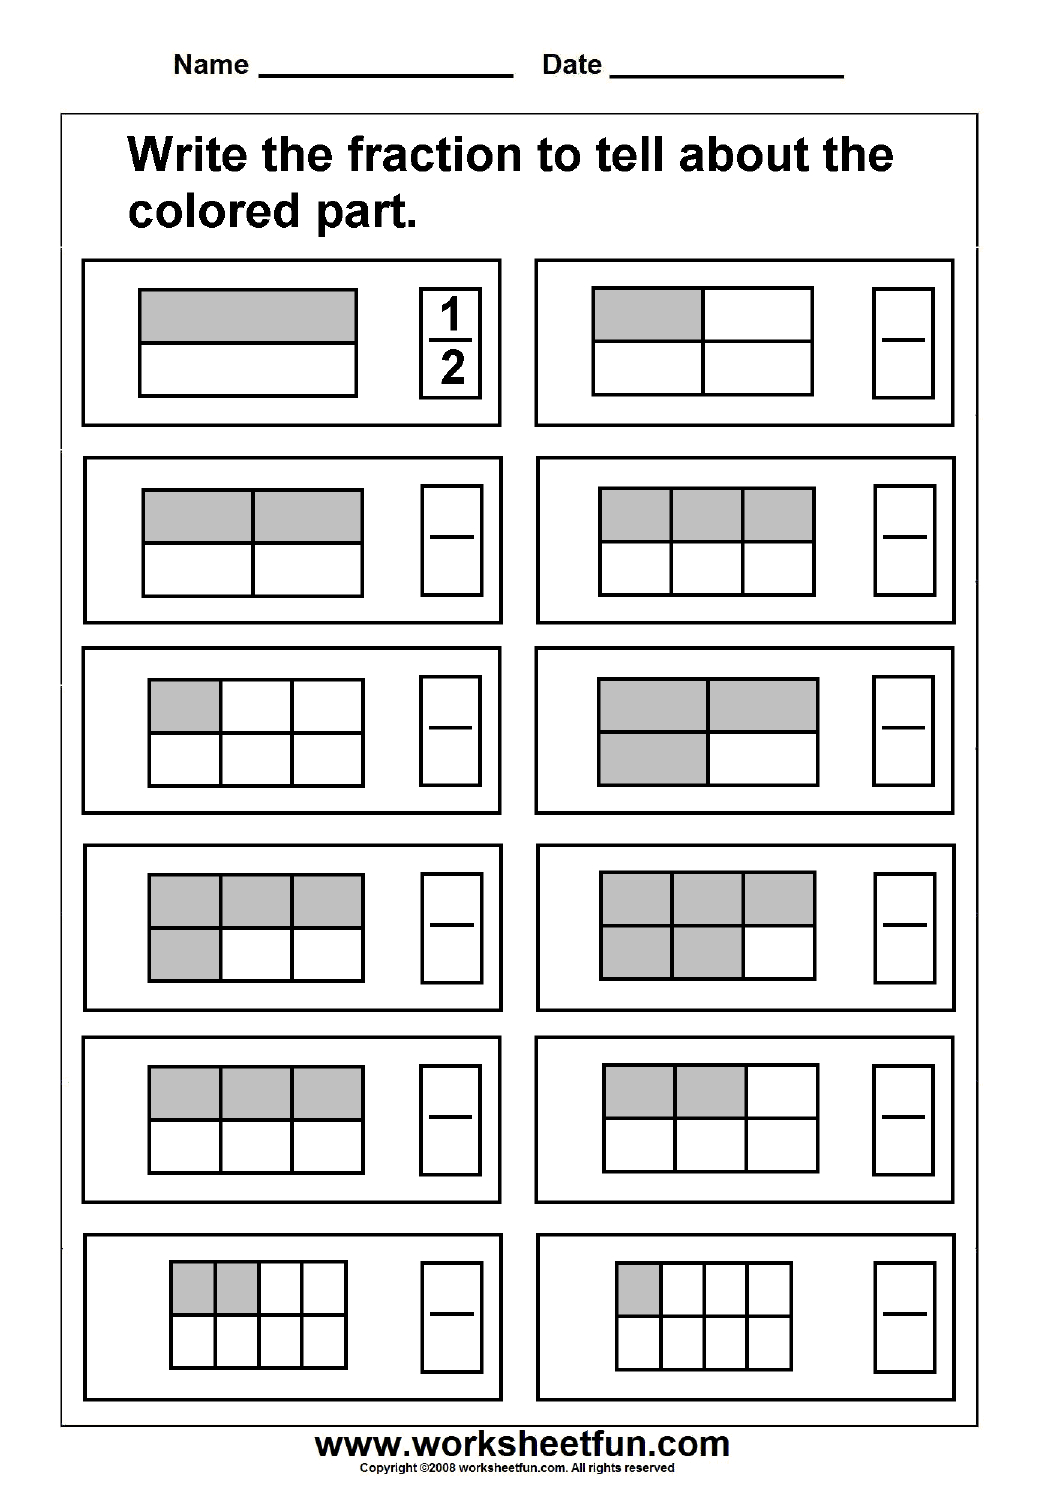 Fraction / Free Printable Worksheets – Worksheetfun - Free Printable Fraction Worksheets